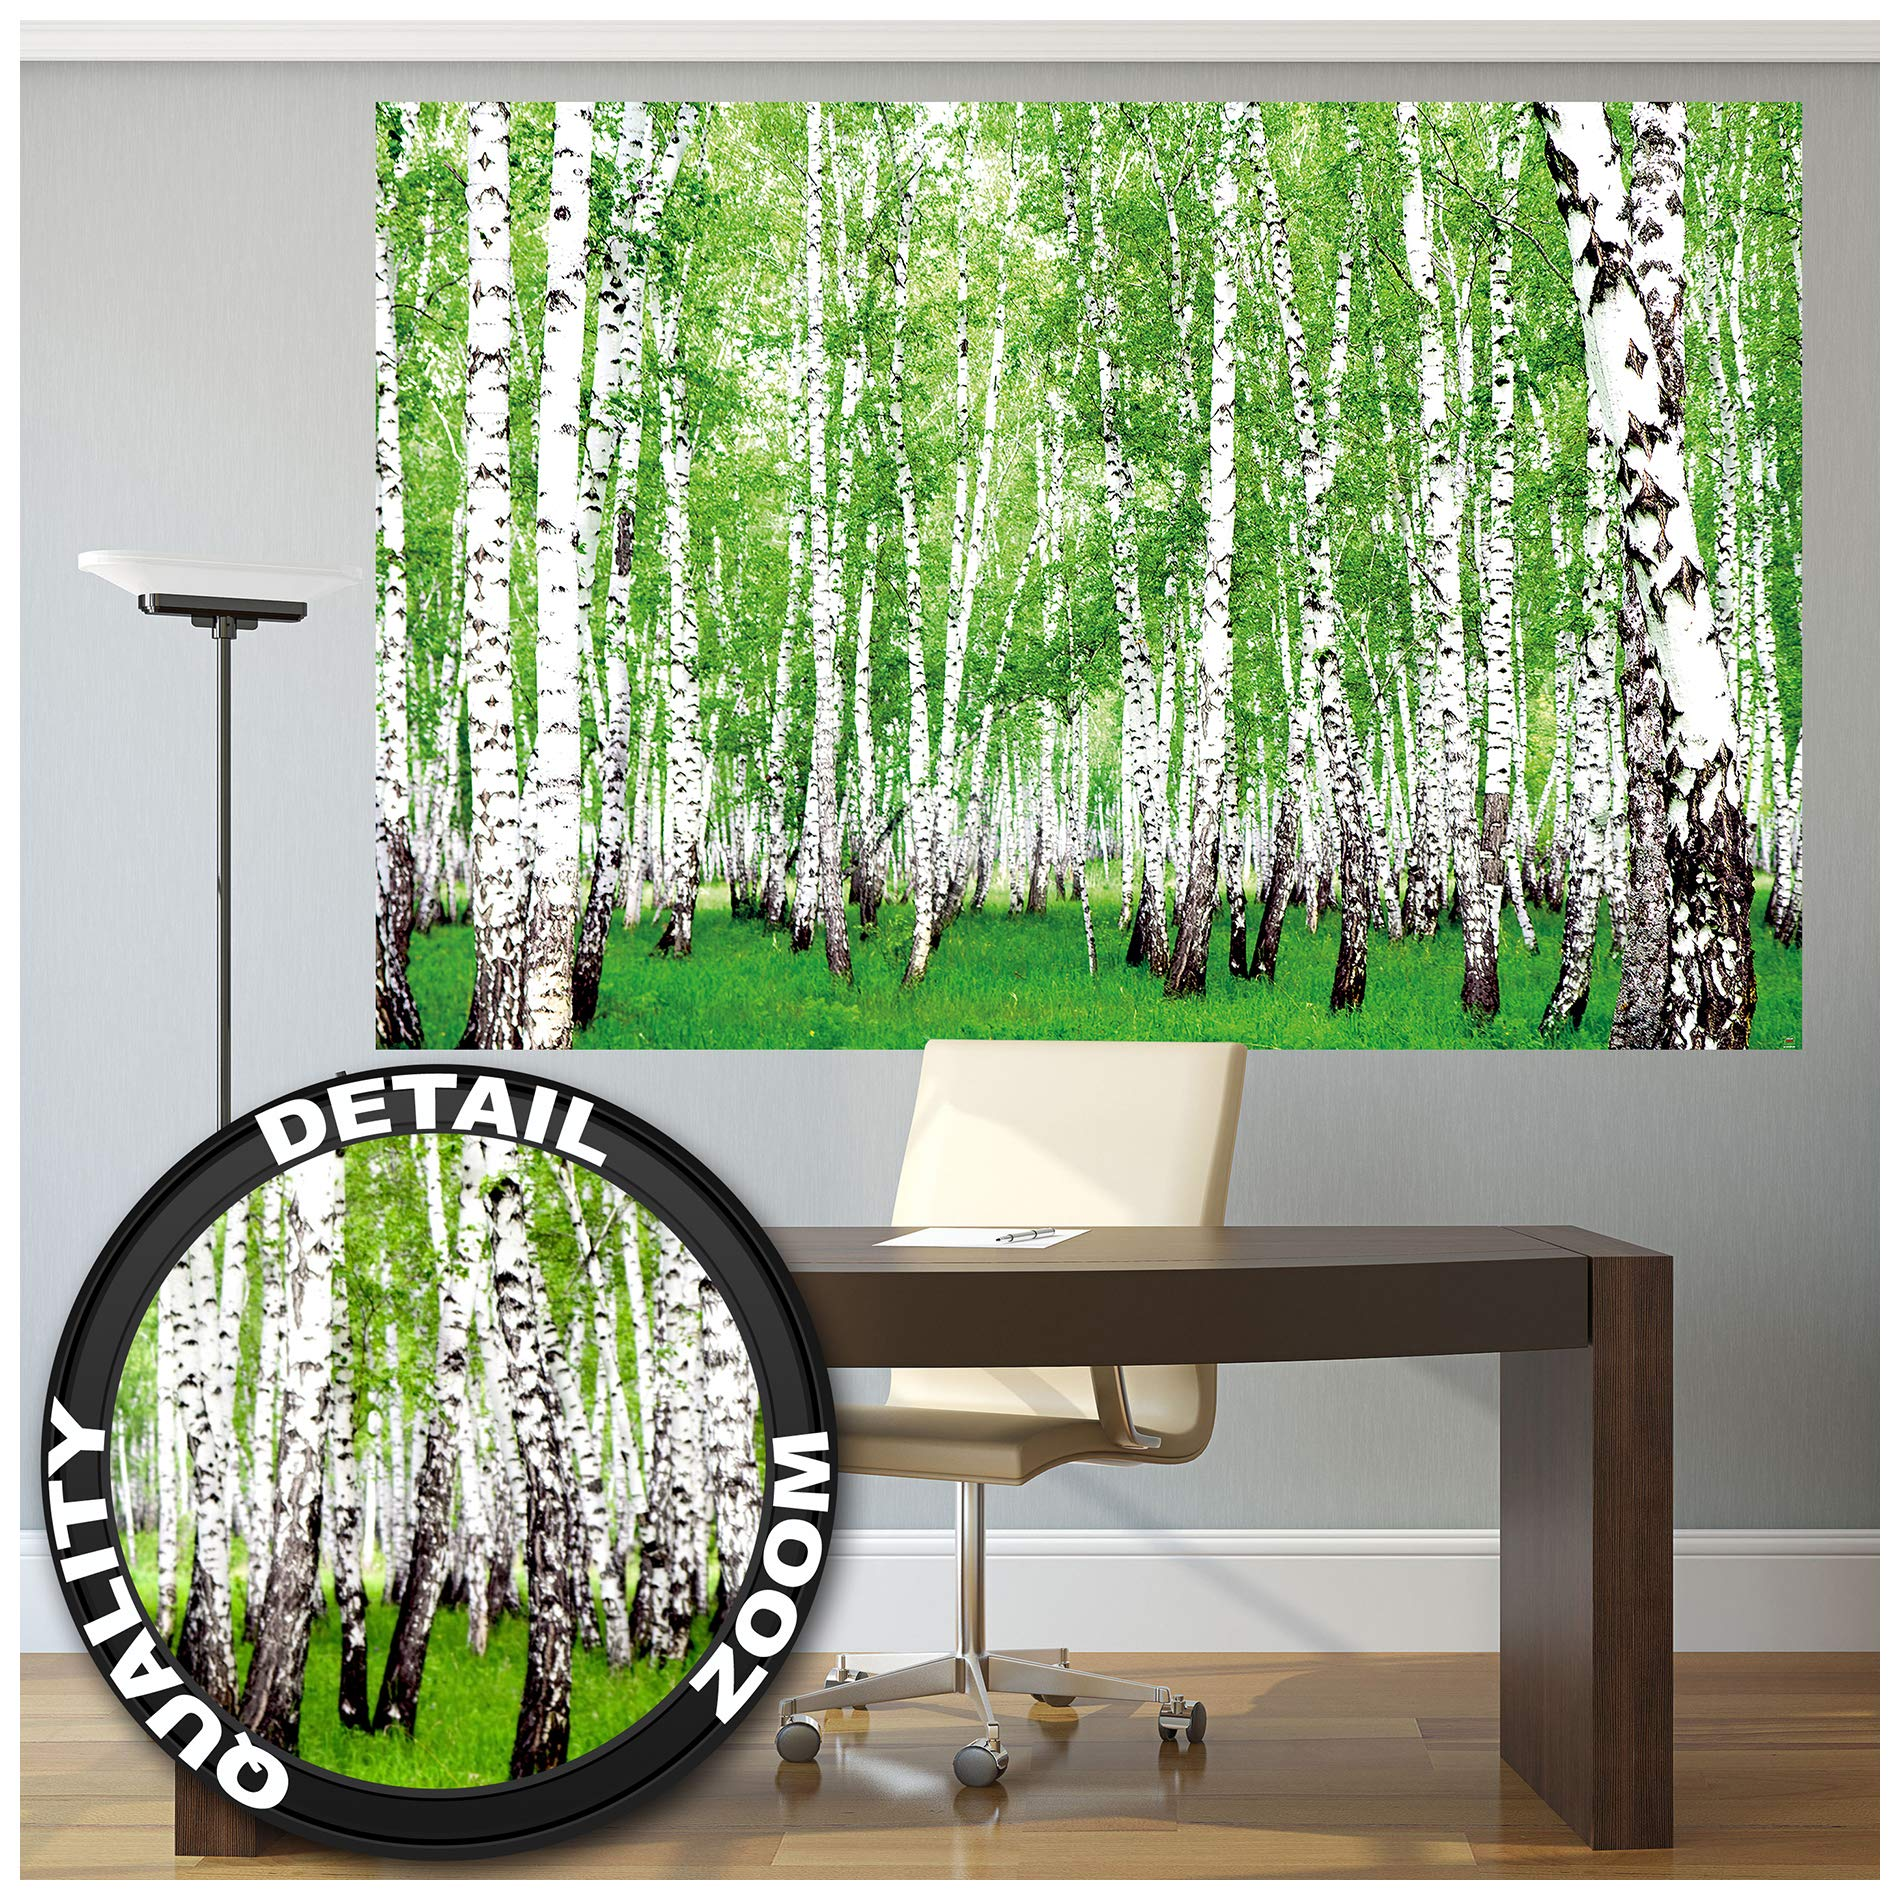 GREAT ART Poster – Birch Forest – Picture Decoration Outdoor Landscape Country Trees Green Woodland Summer Glade Walkway Garden Park Image Photo Decor Wall Mural (55x39.4in - 140x100cm)